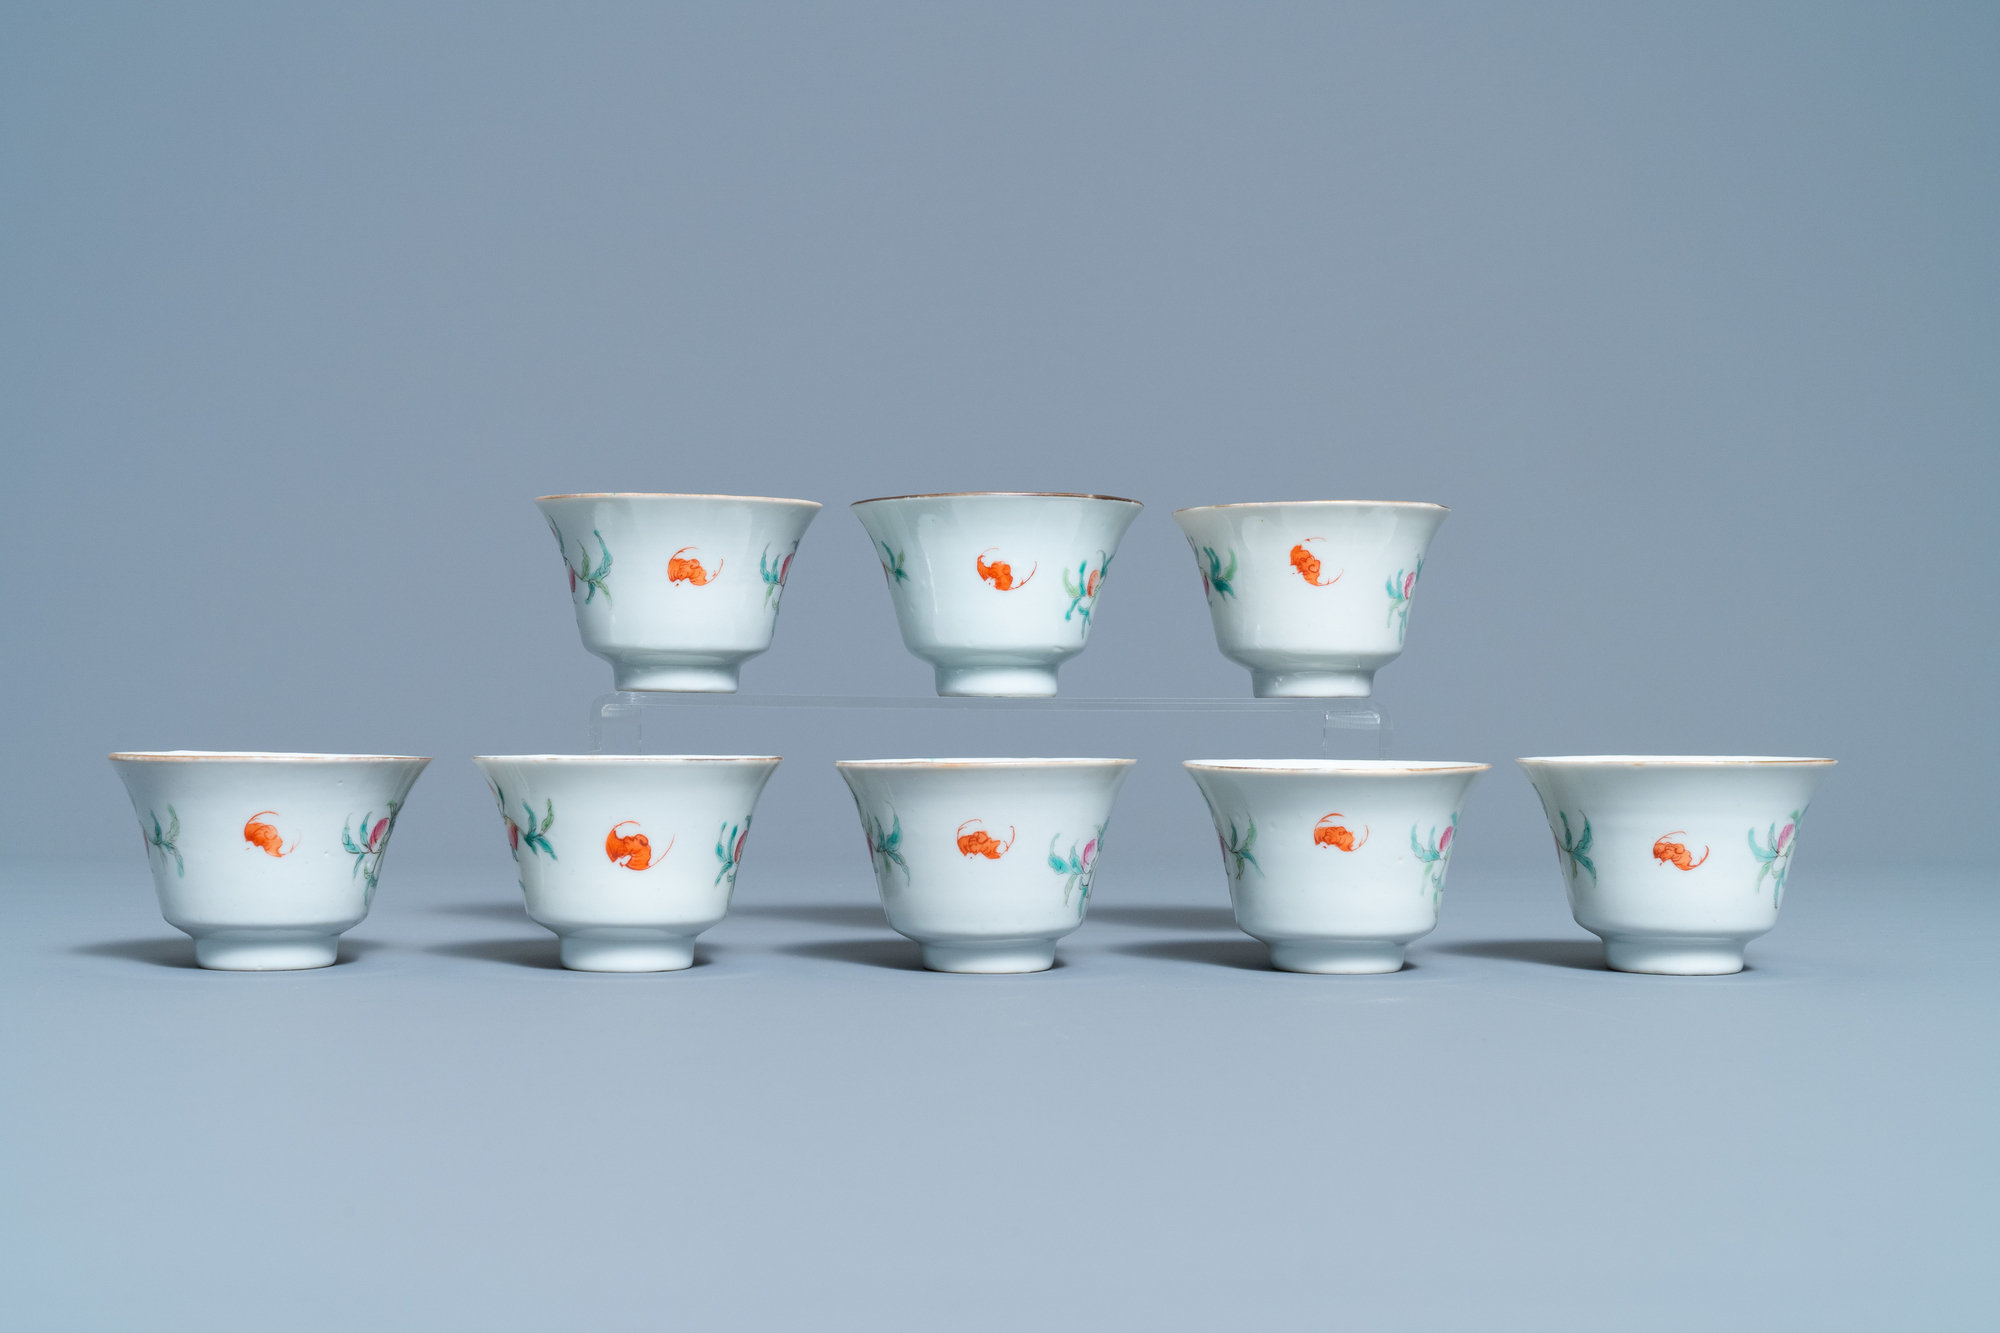 Eight Chinese famille rose 'nine peach' bowls, Hui Tong Zhen Pin mark, 19/20th C. - Image 4 of 7